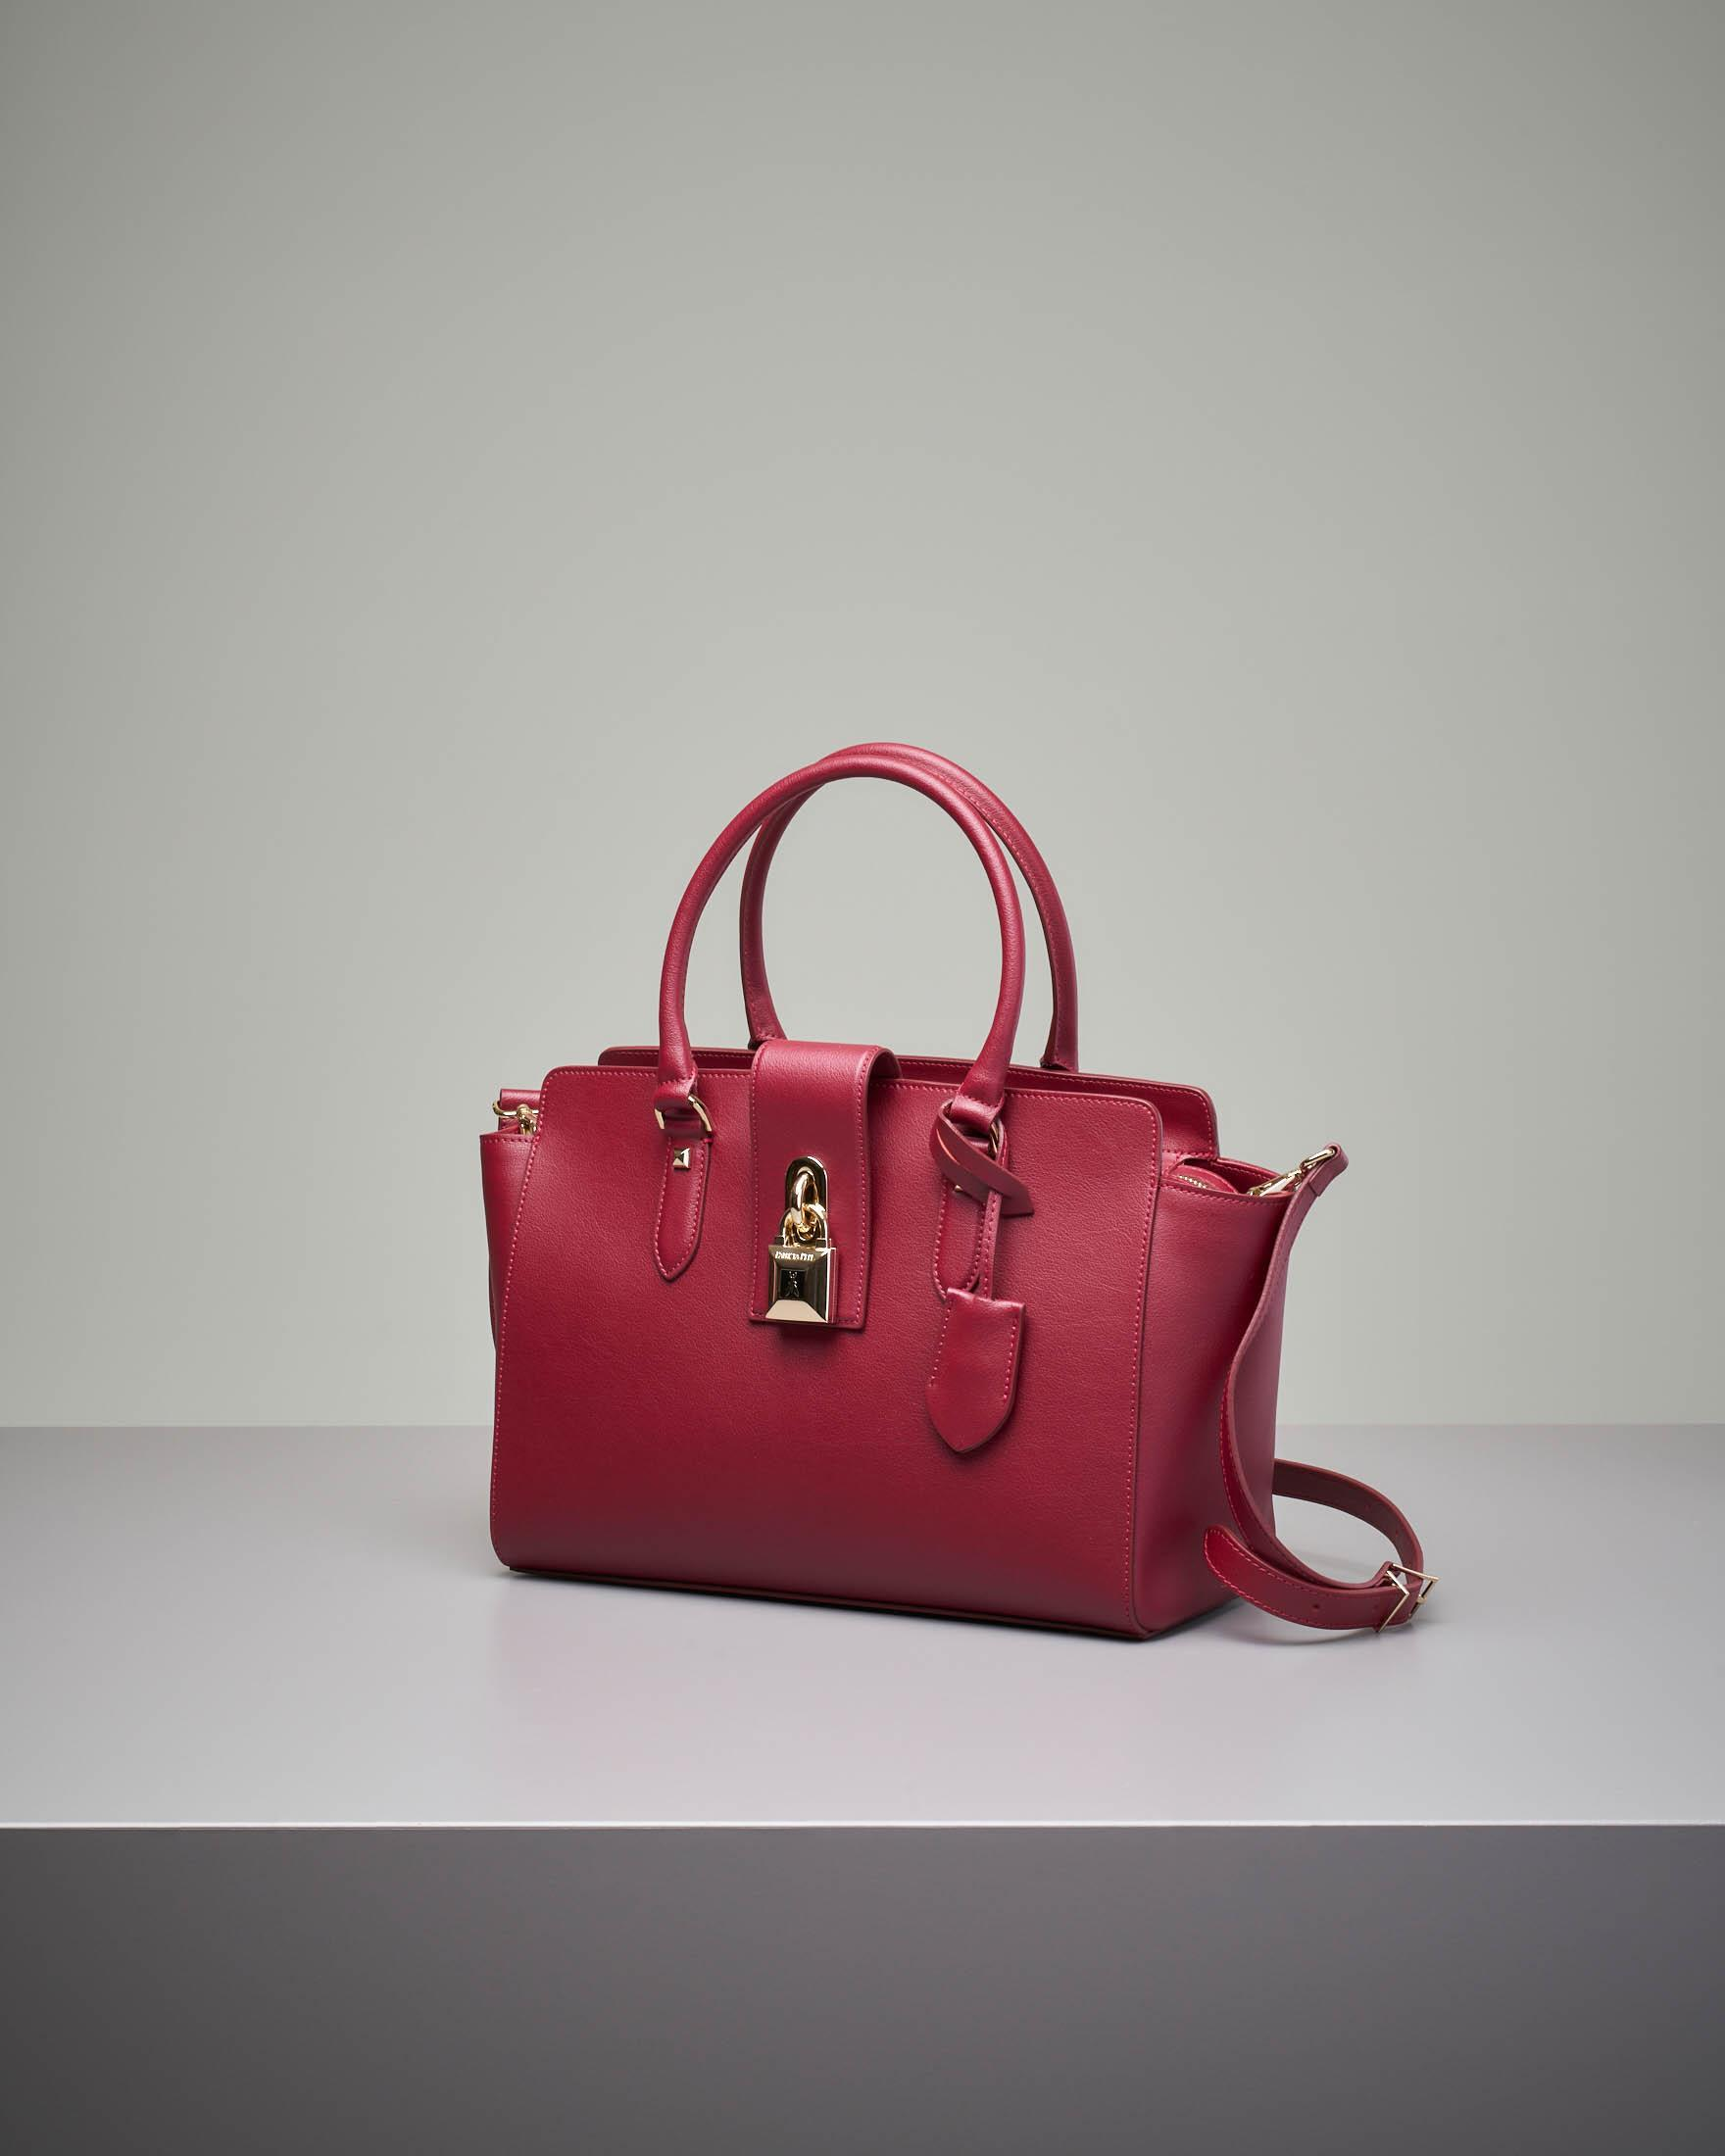 Bauletto rigido in pelle bordeaux